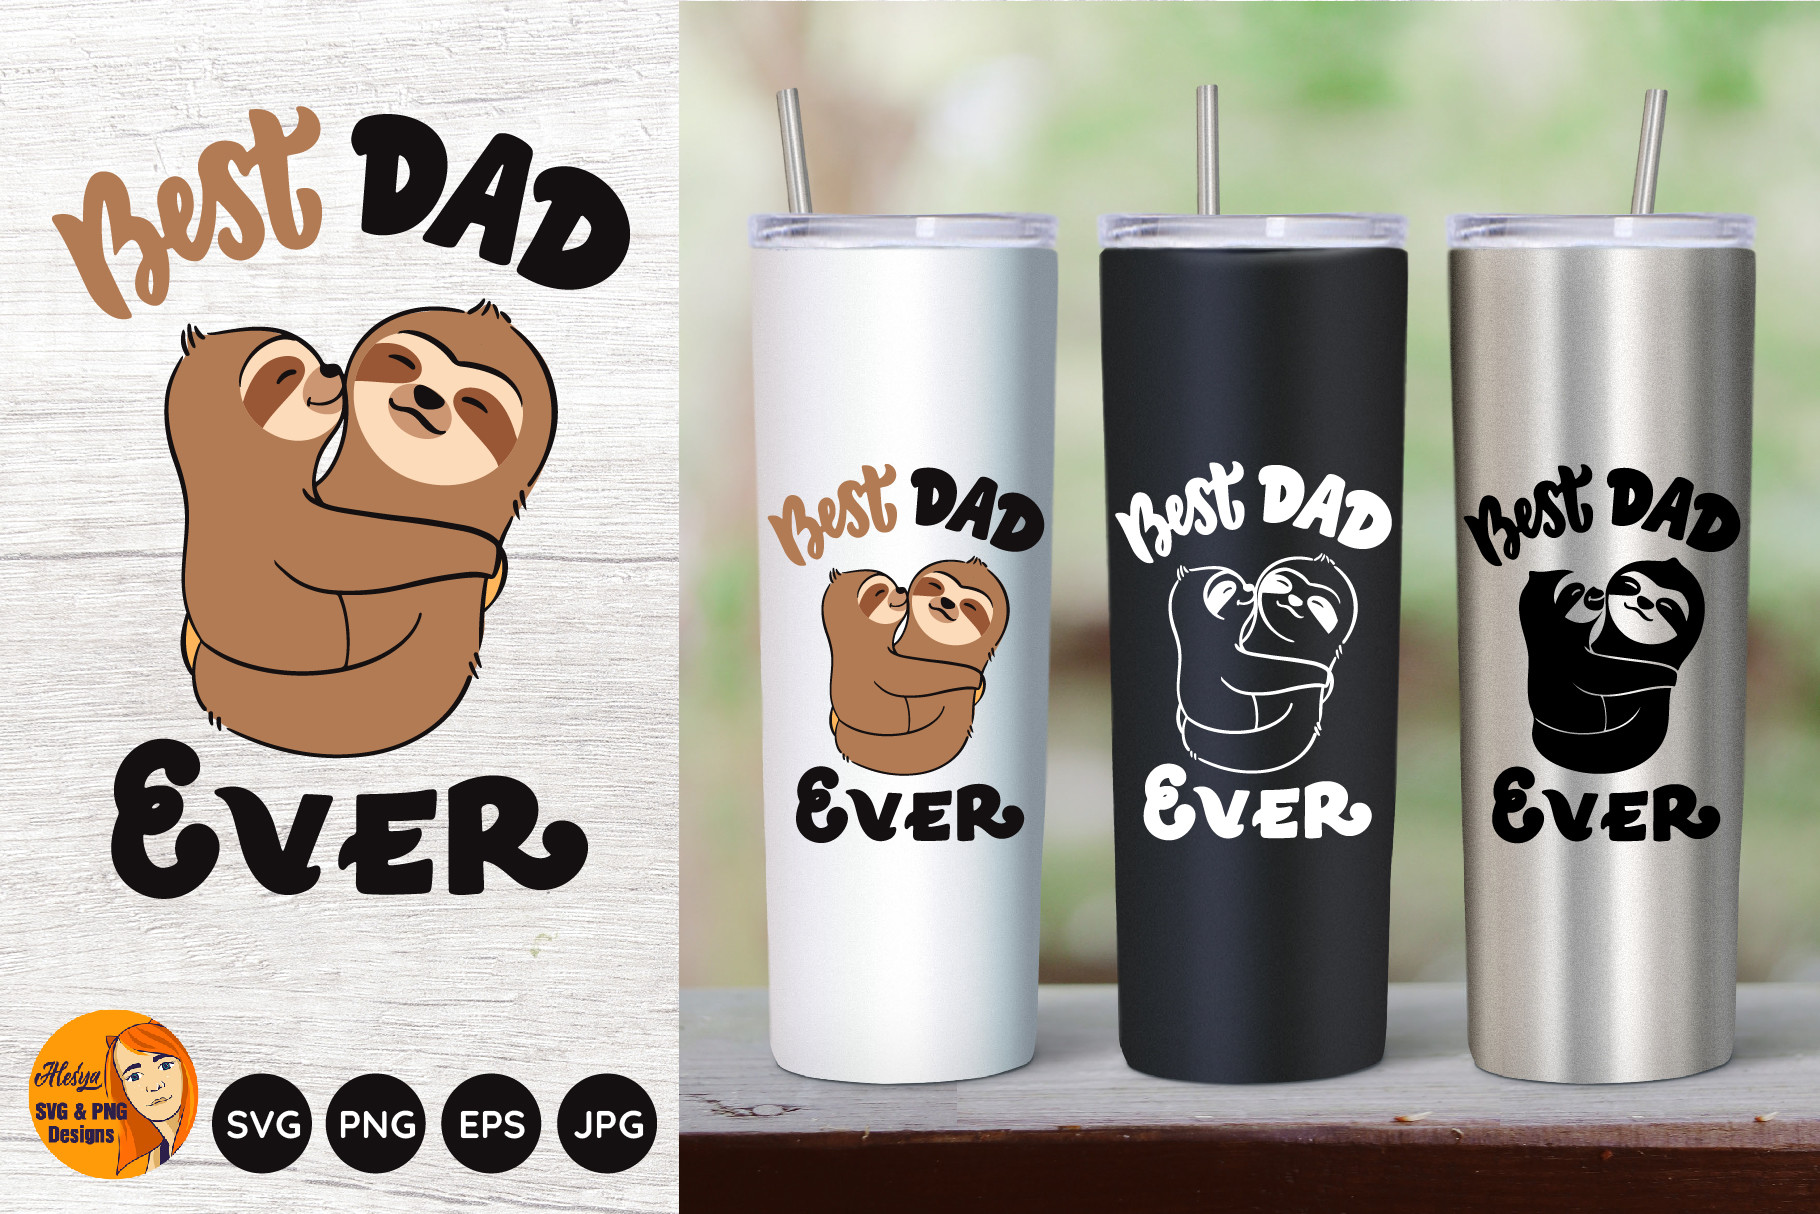 Best Dad Ever. Dad and Son. Sloth... SVG File